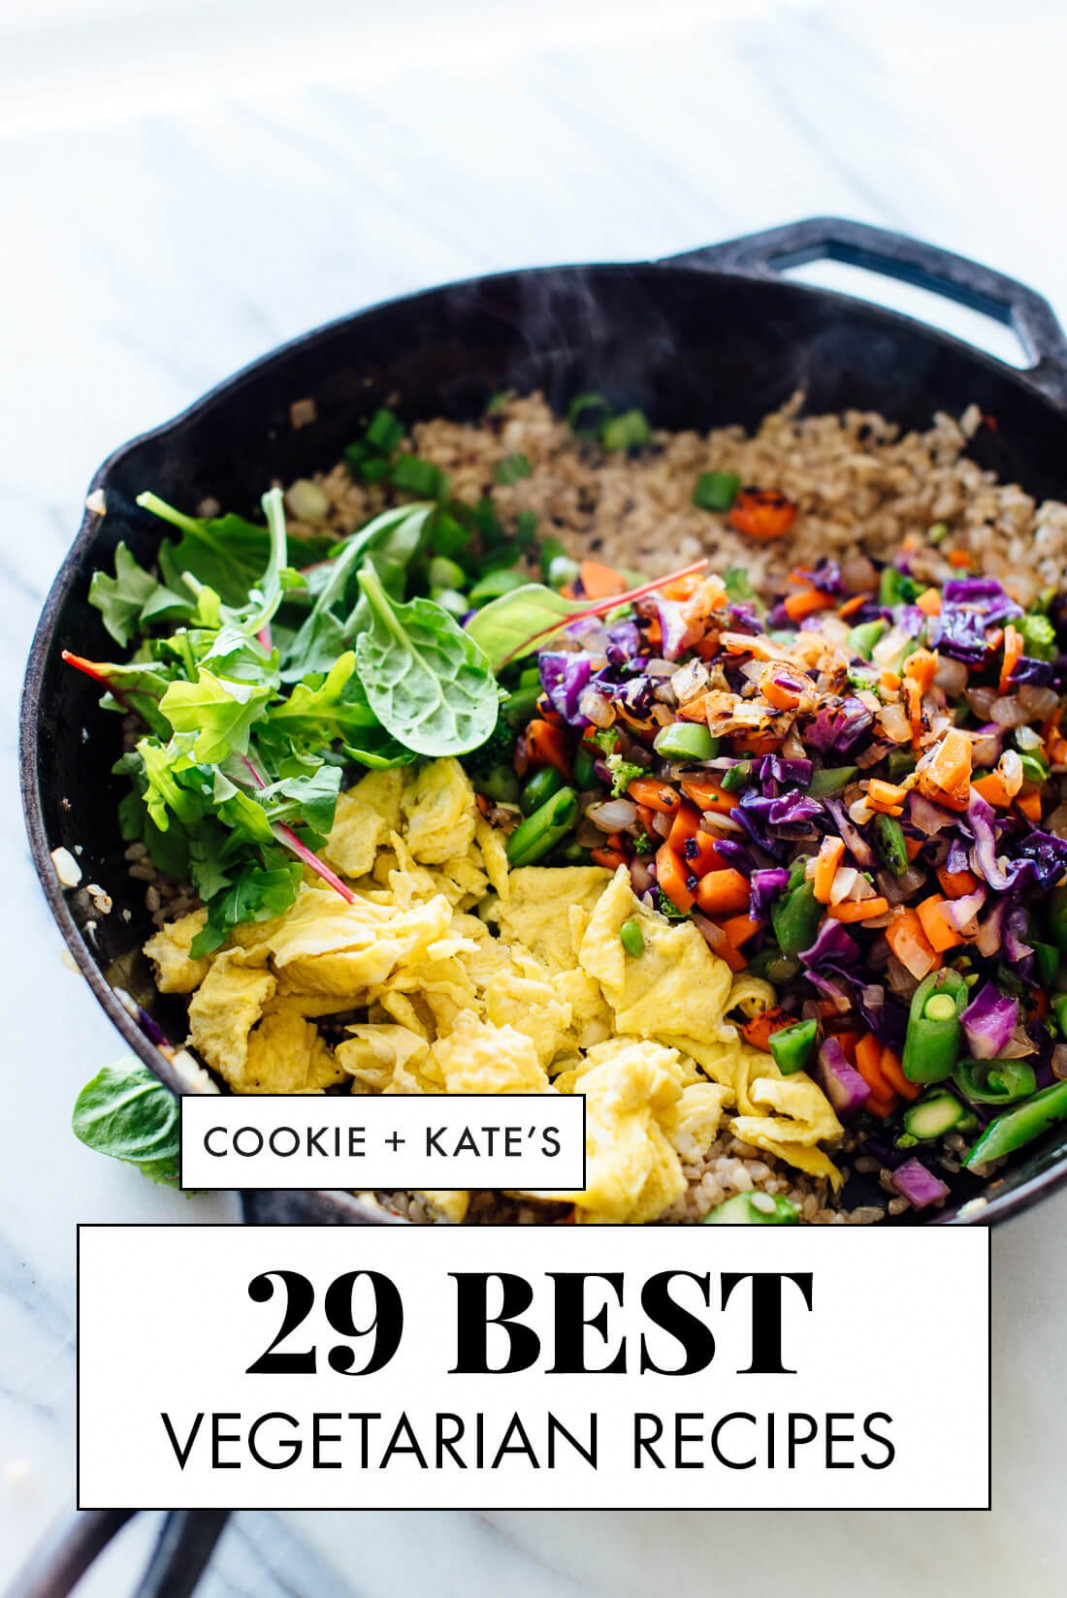 11 Best Vegetarian Recipes - Cookie and Kate - recipes vegetarian quick